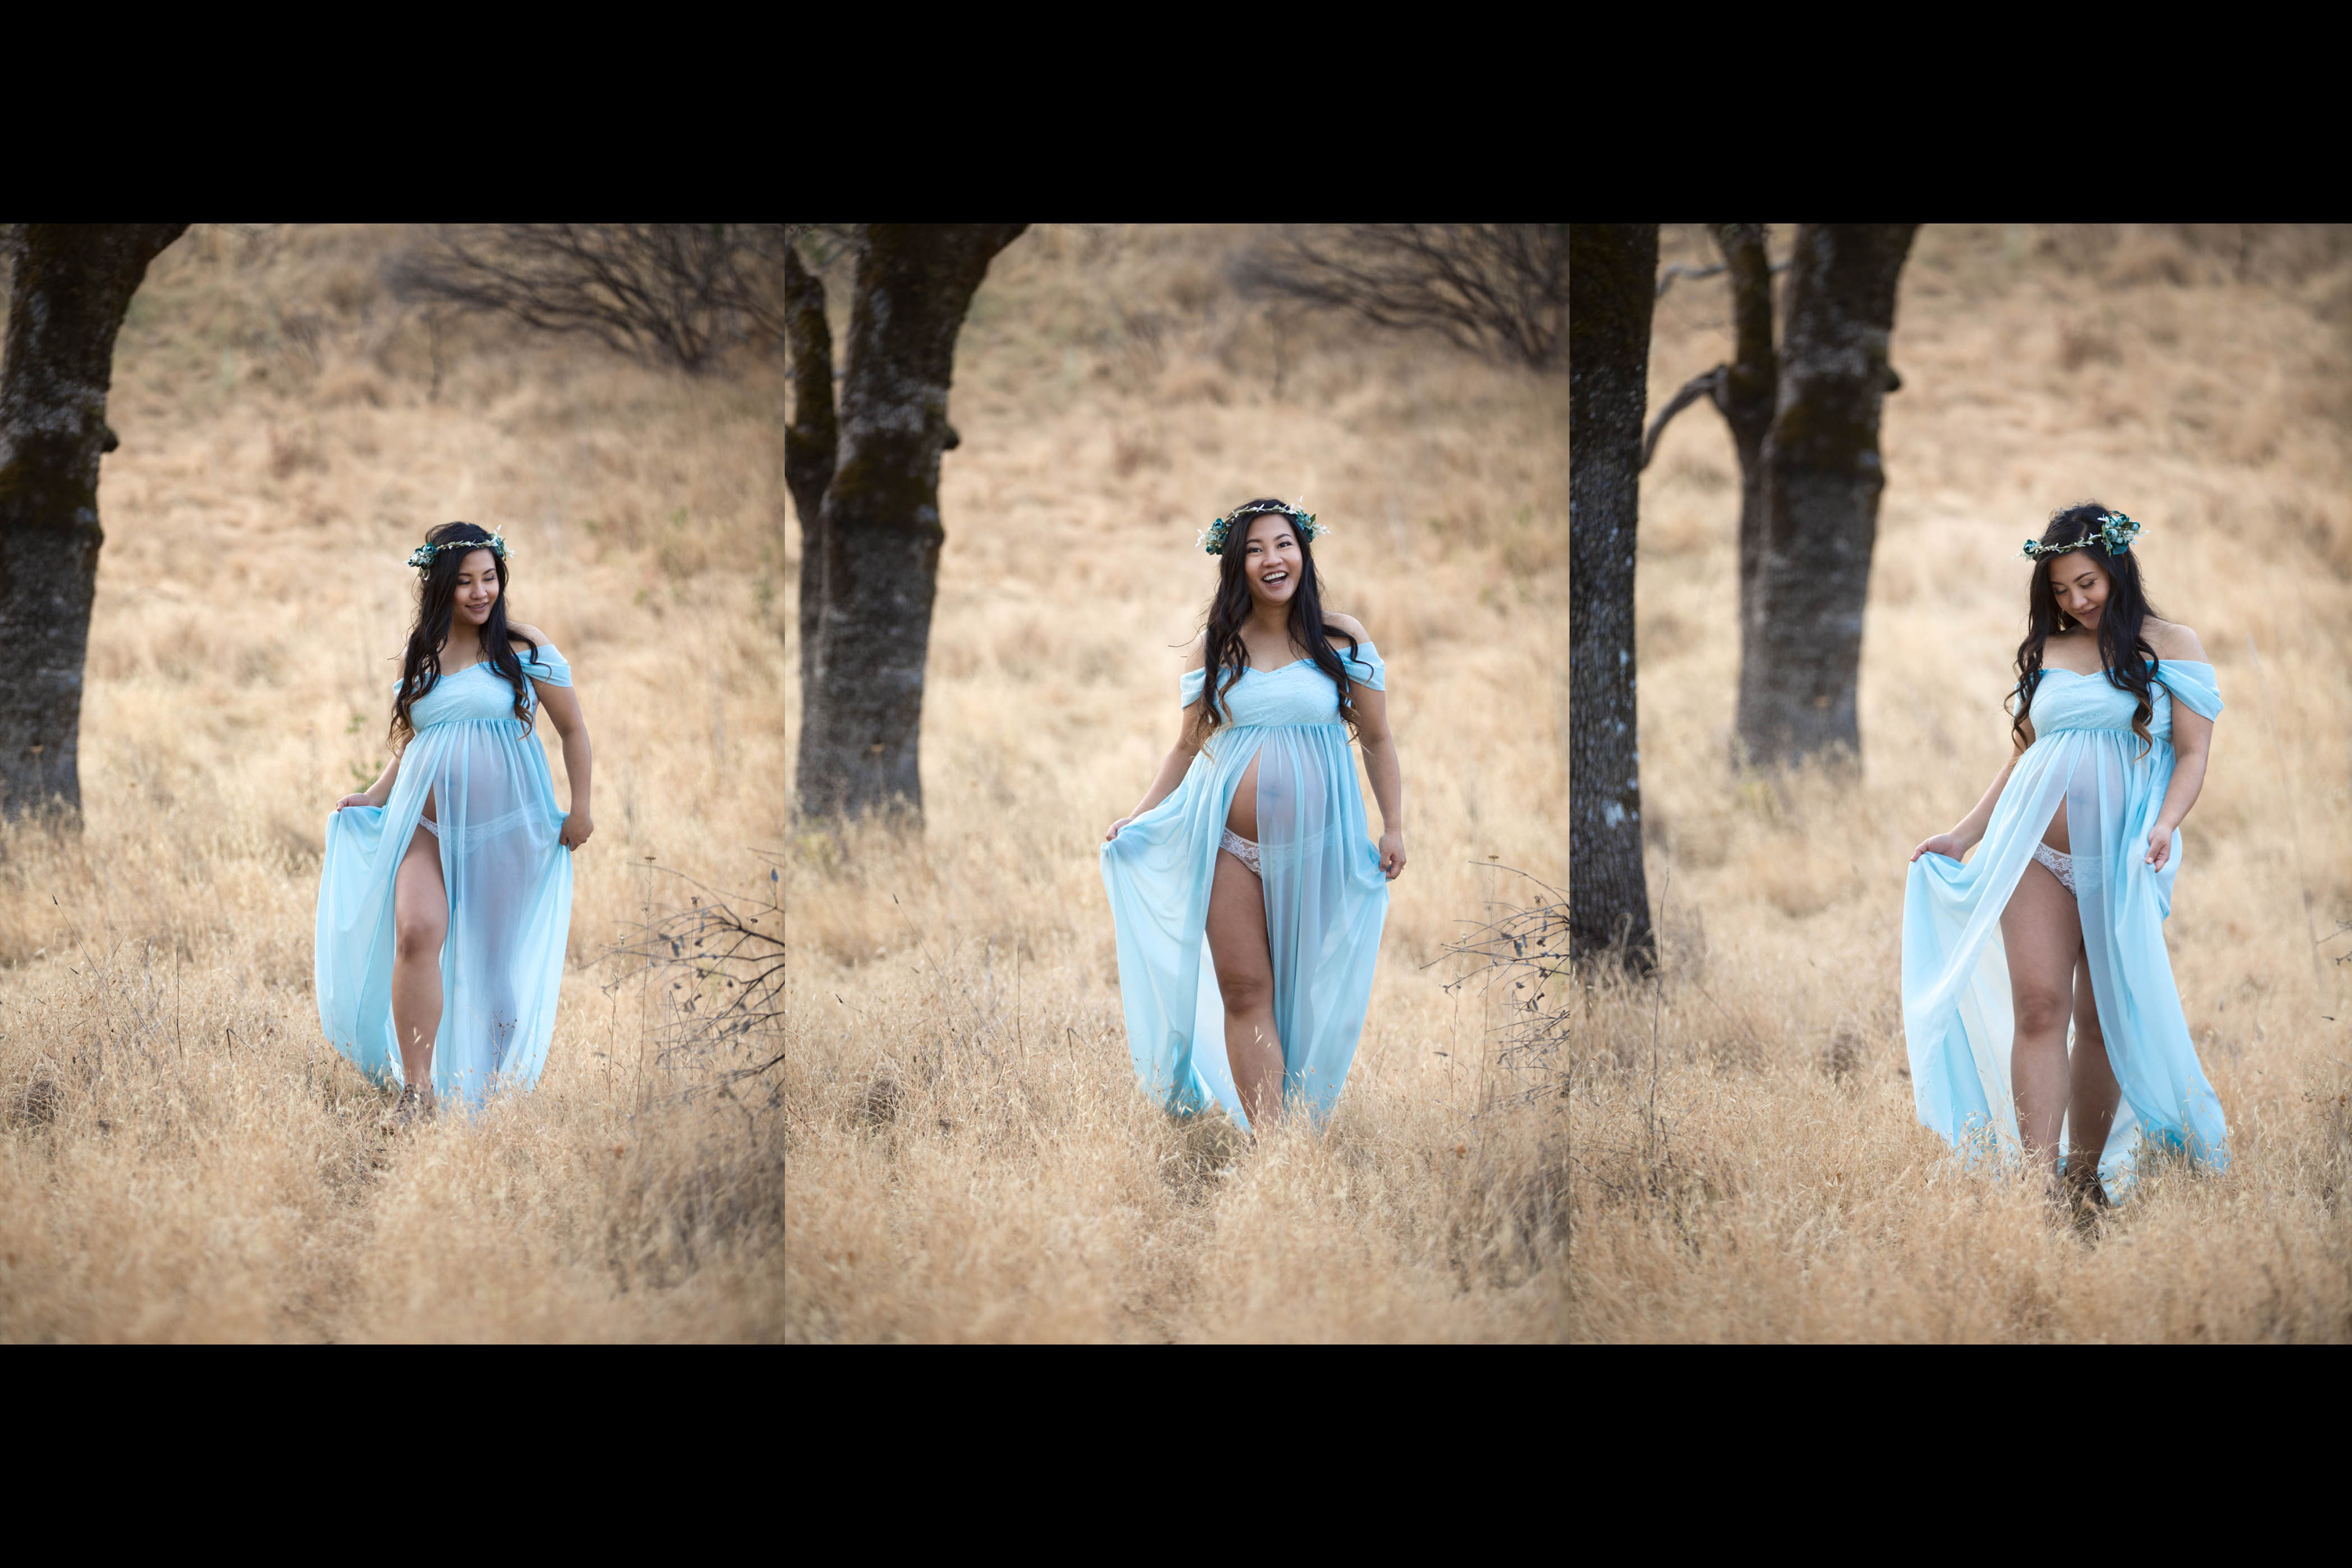 pregnant woman in field with sheer blue dress